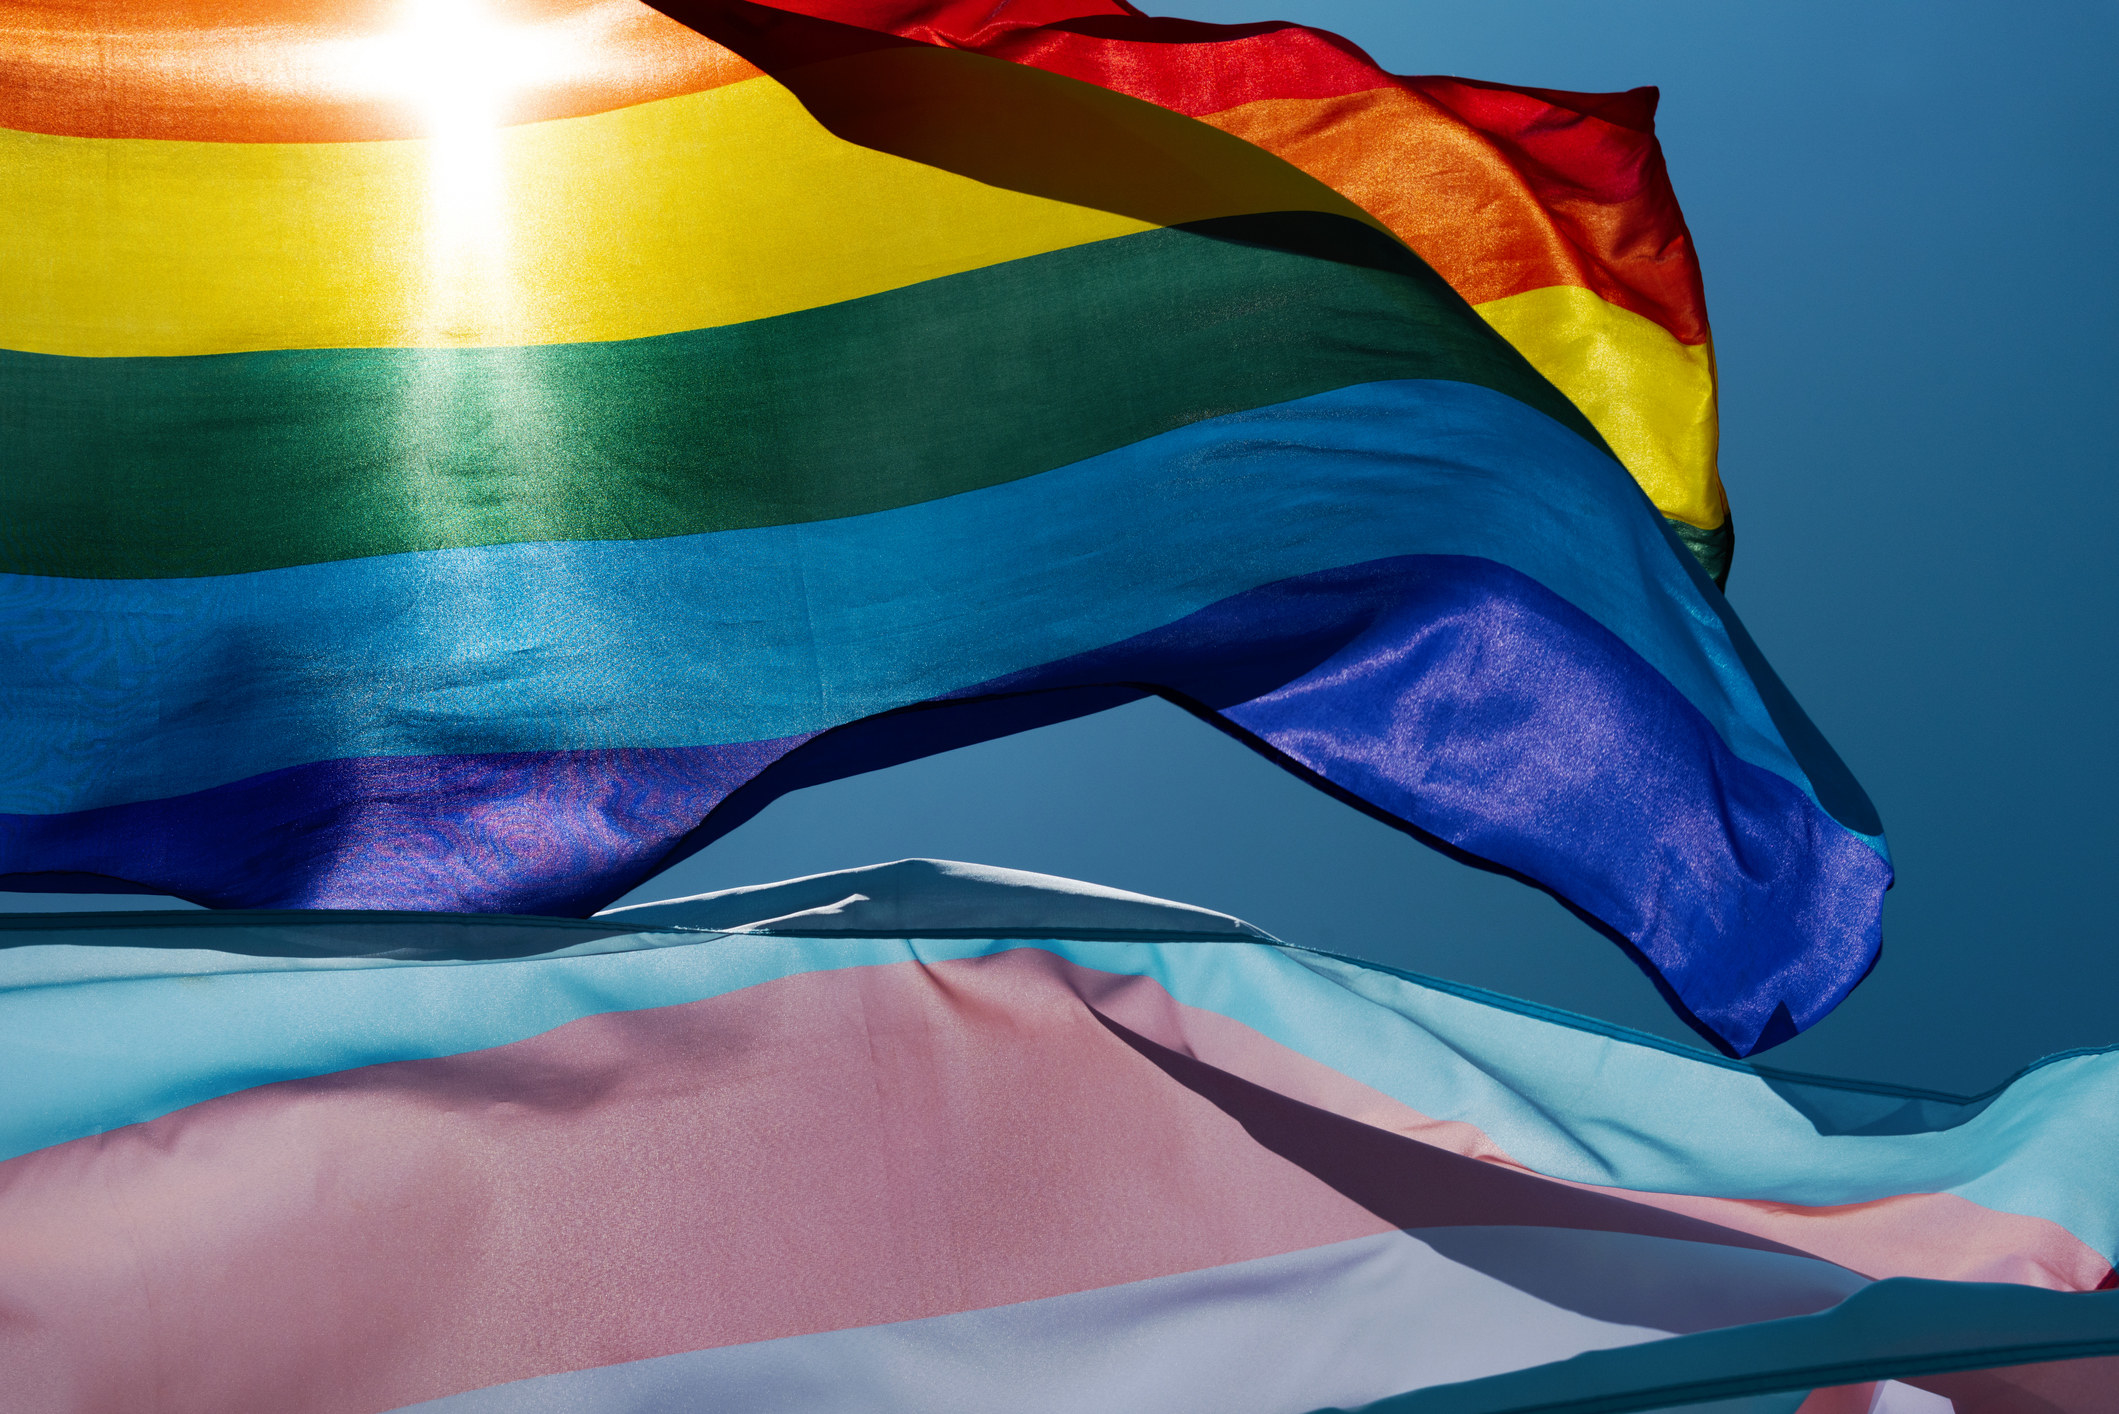 The Rainbow flag and the Transgender Pride flag fly high as the sun peaks through